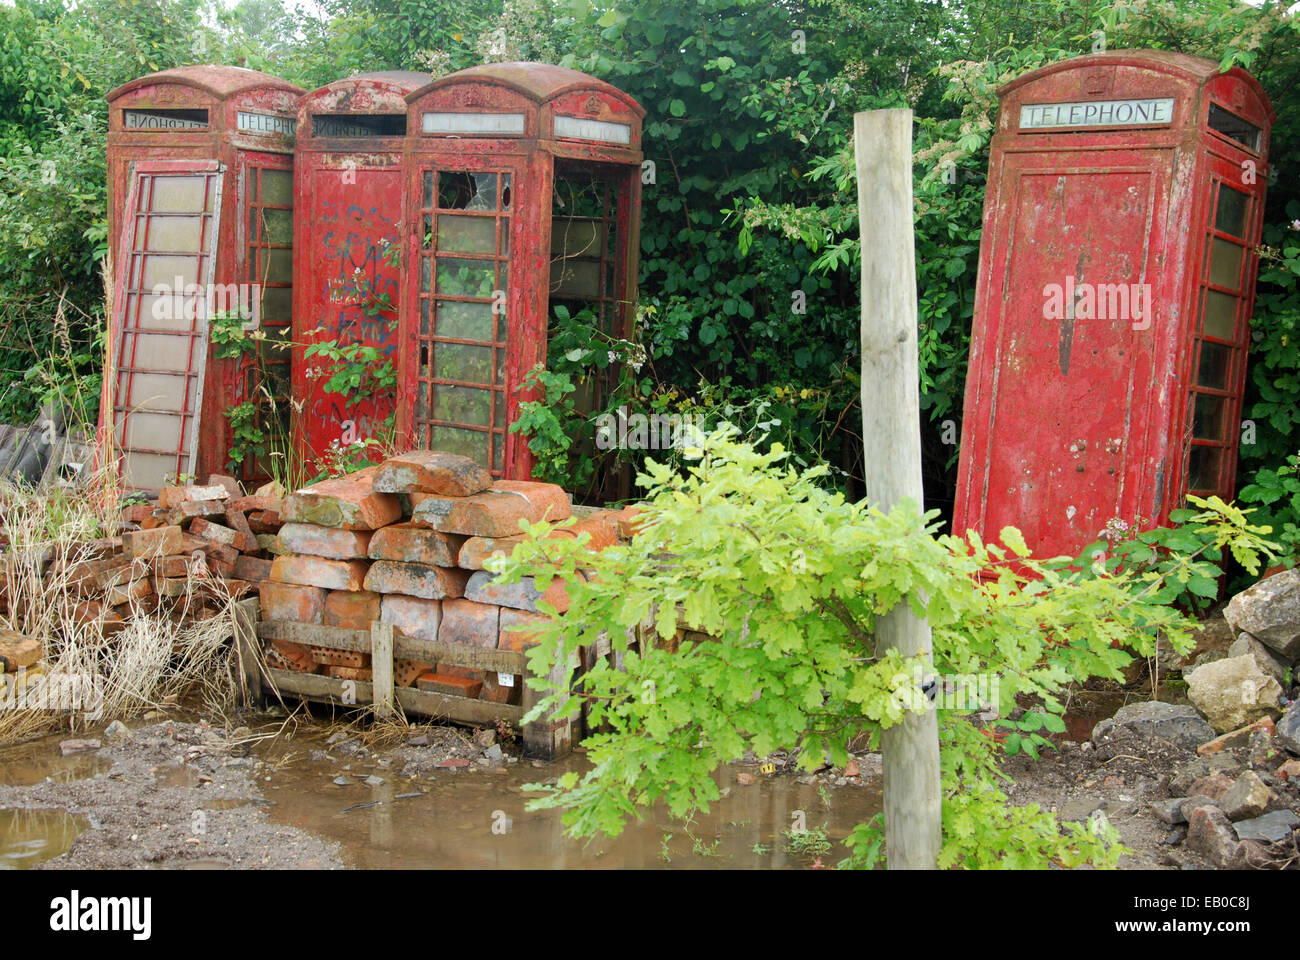 derelict classic red phone boxes - Stock Image